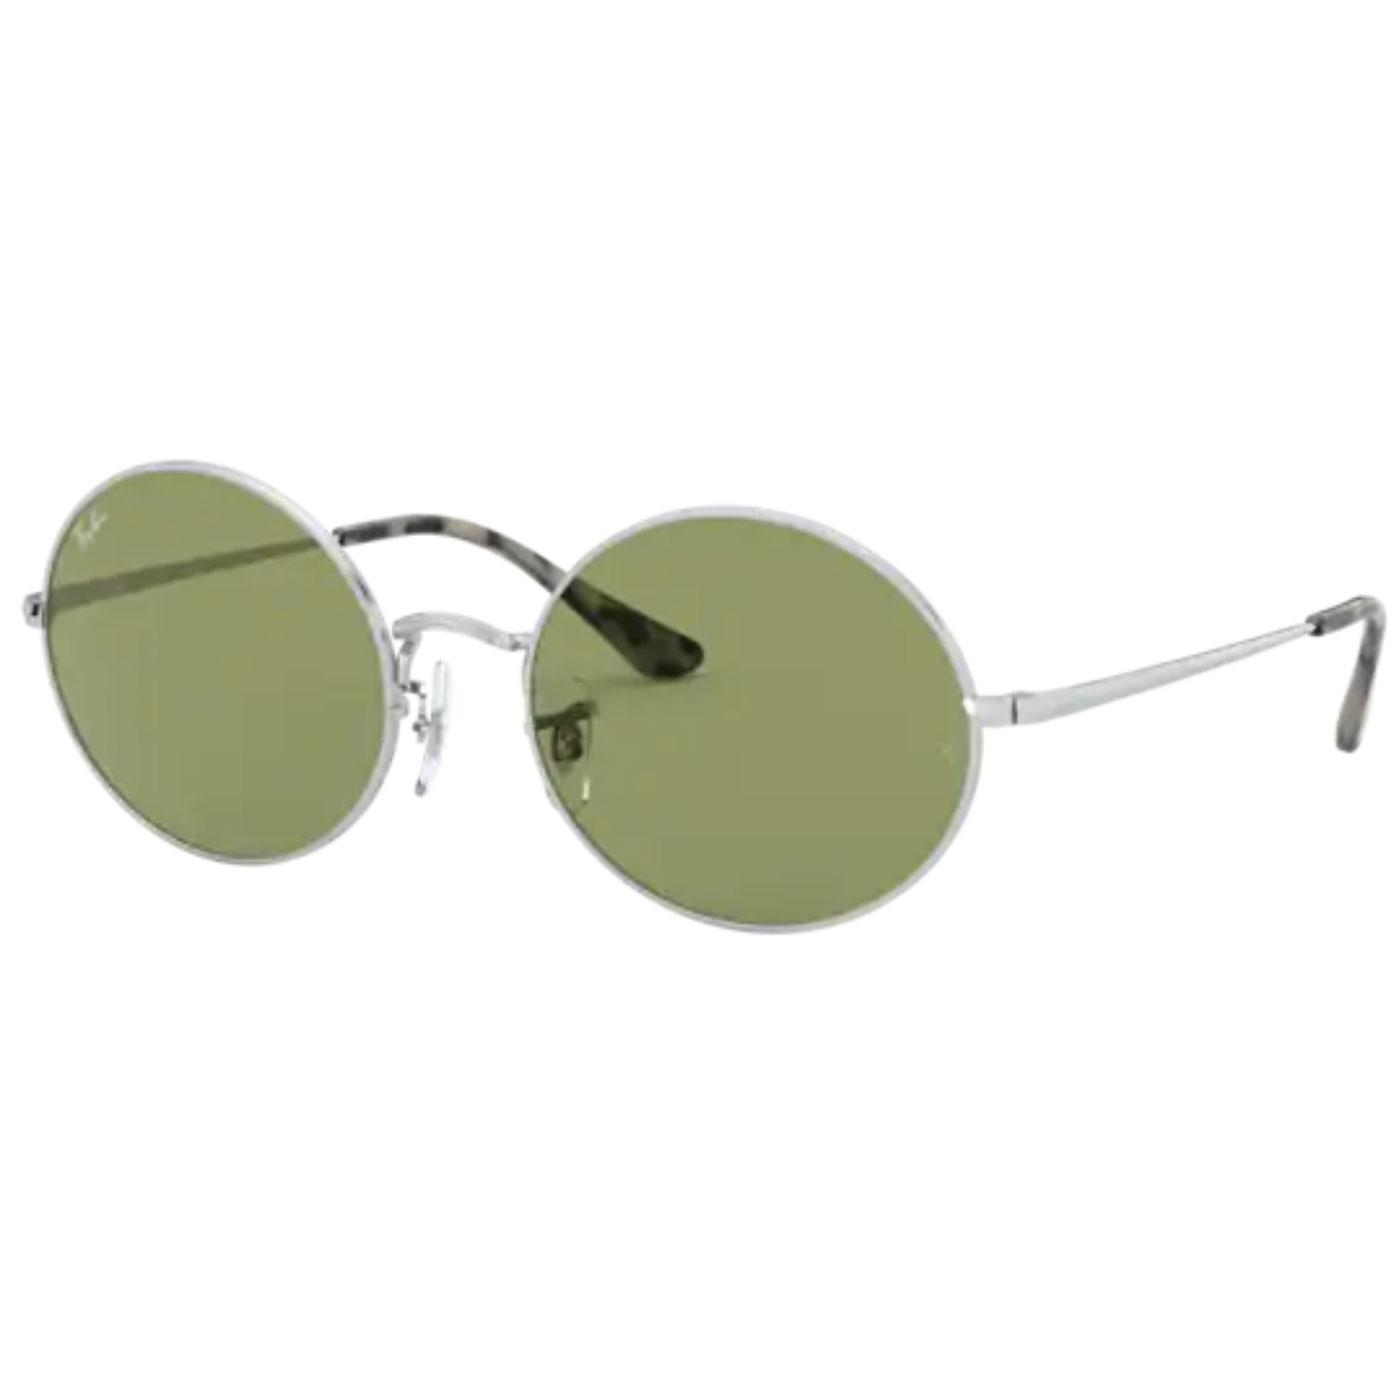 RAY-BAN RB1970 Retro Oval Sunglasses SILVER/GREEN